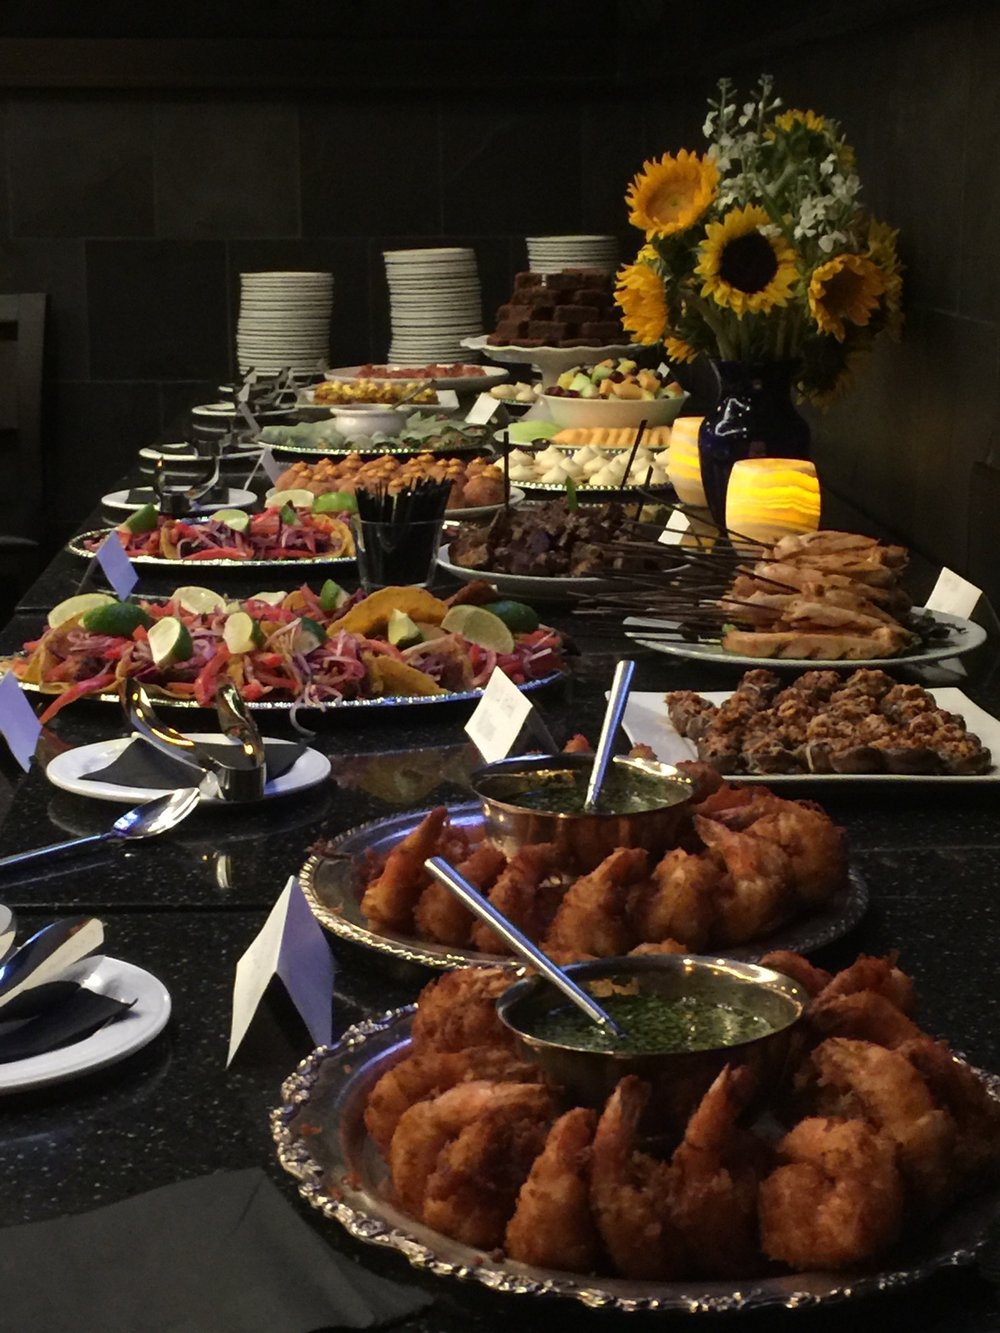 The fruits of our labor: a private event feast fit for our guests.We have many options for every event; no matter if your party is small or large, we can be the perfect fit for you.